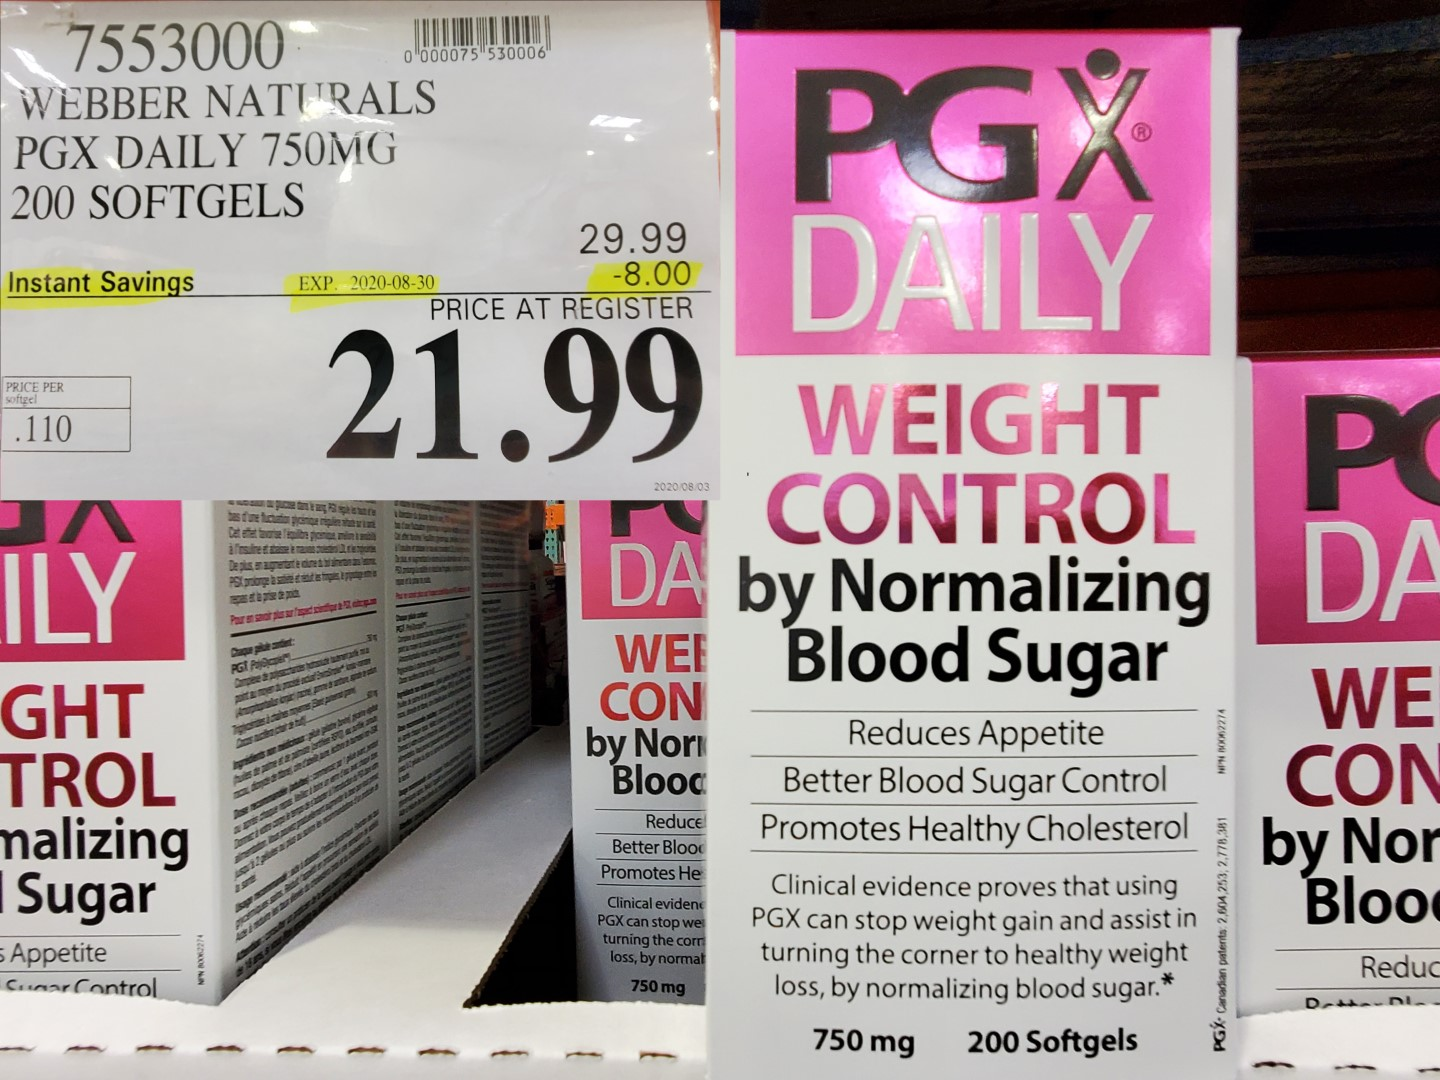 pg daily weight control